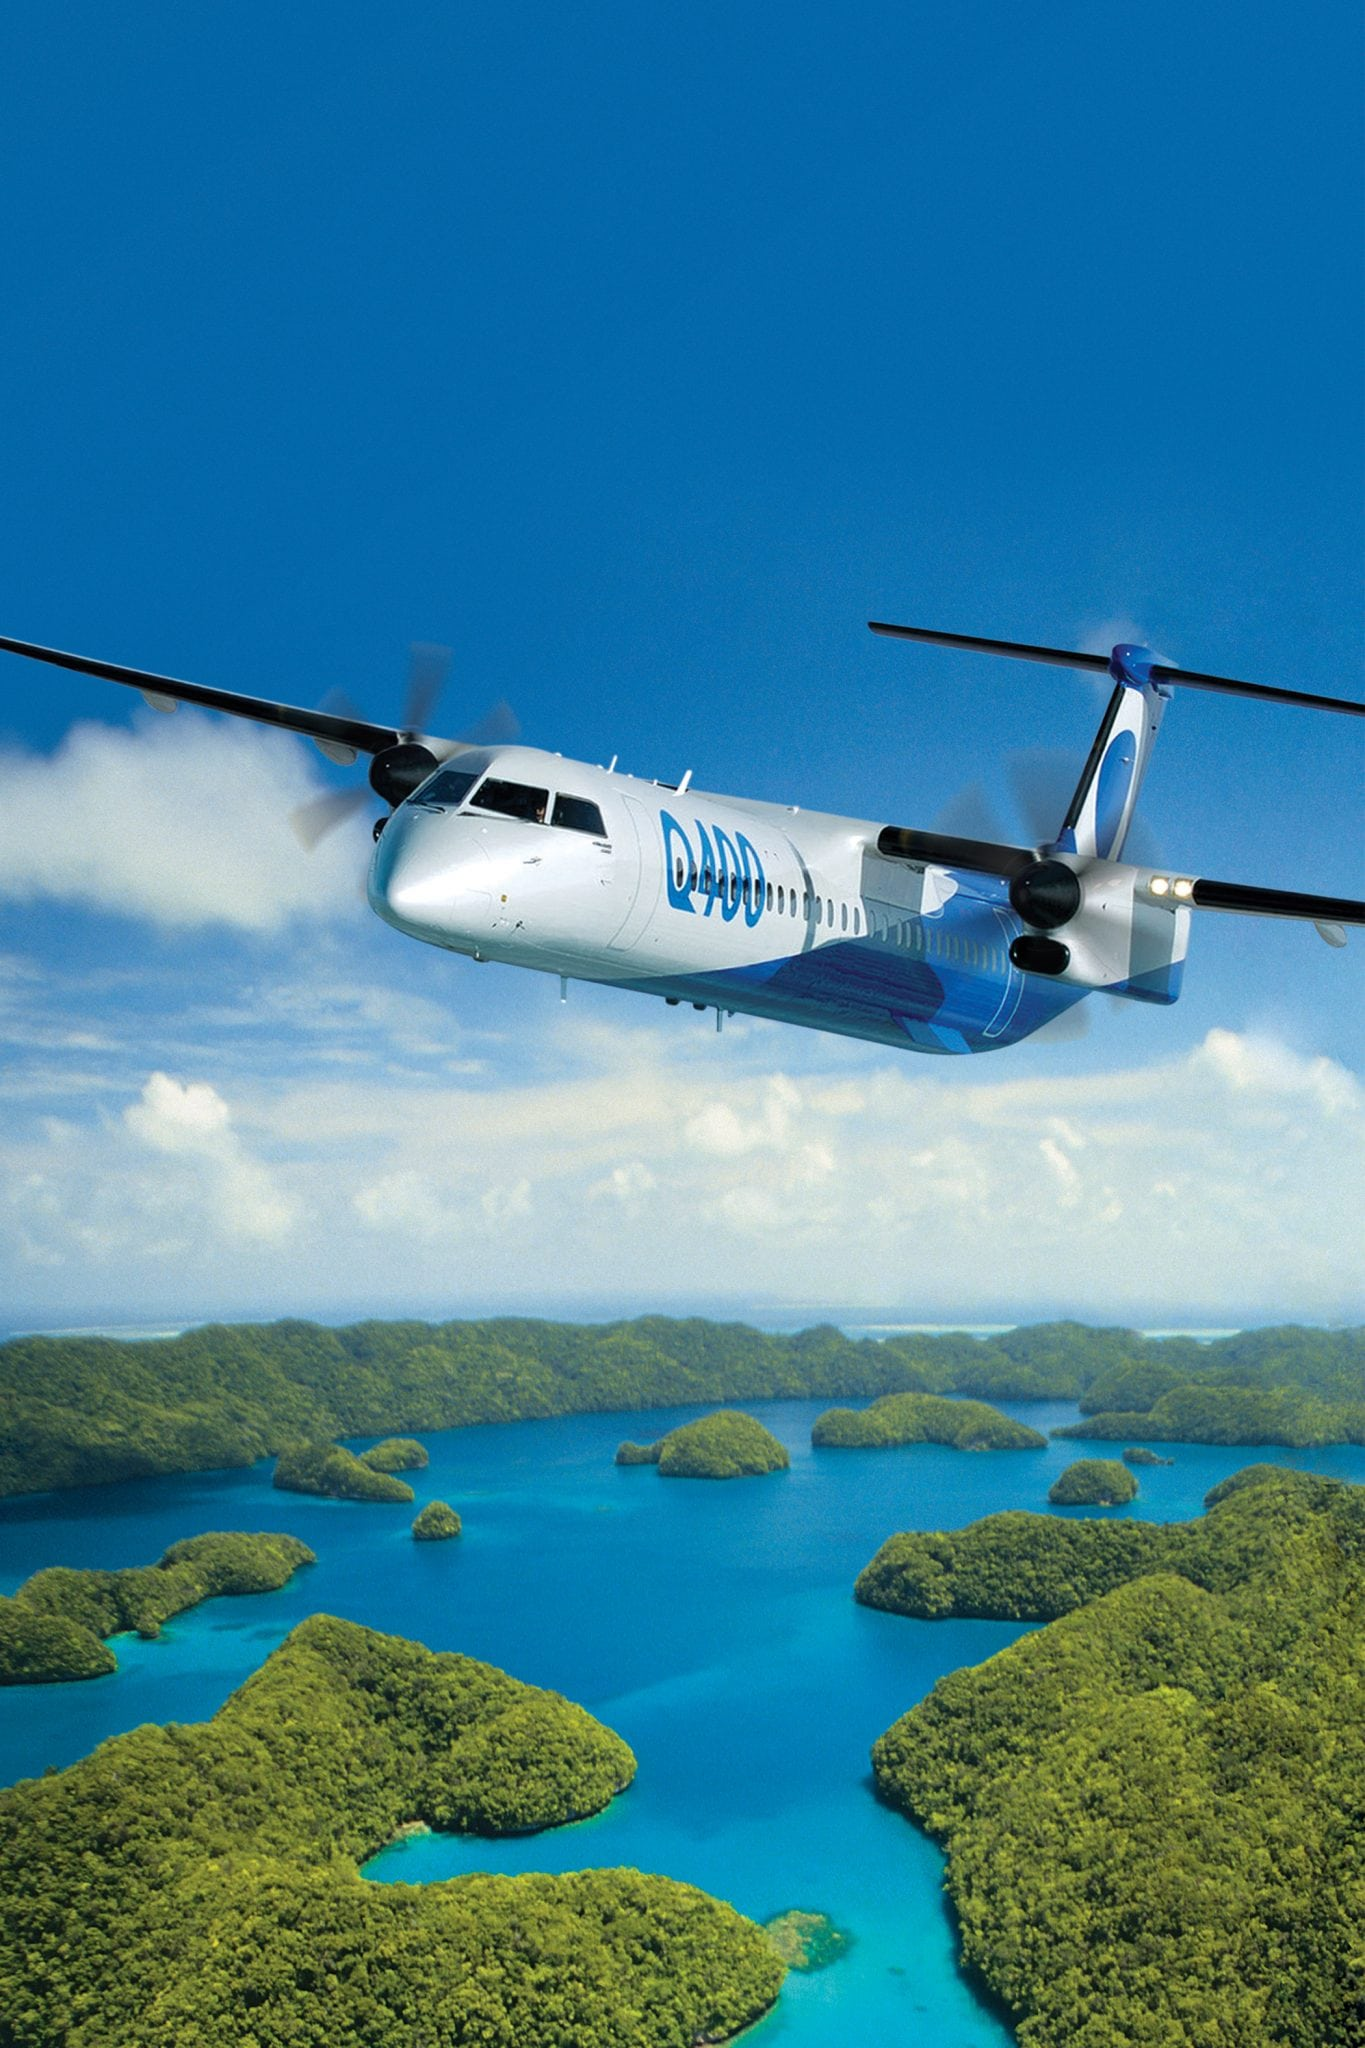 Bombardier's Q400 aircraft